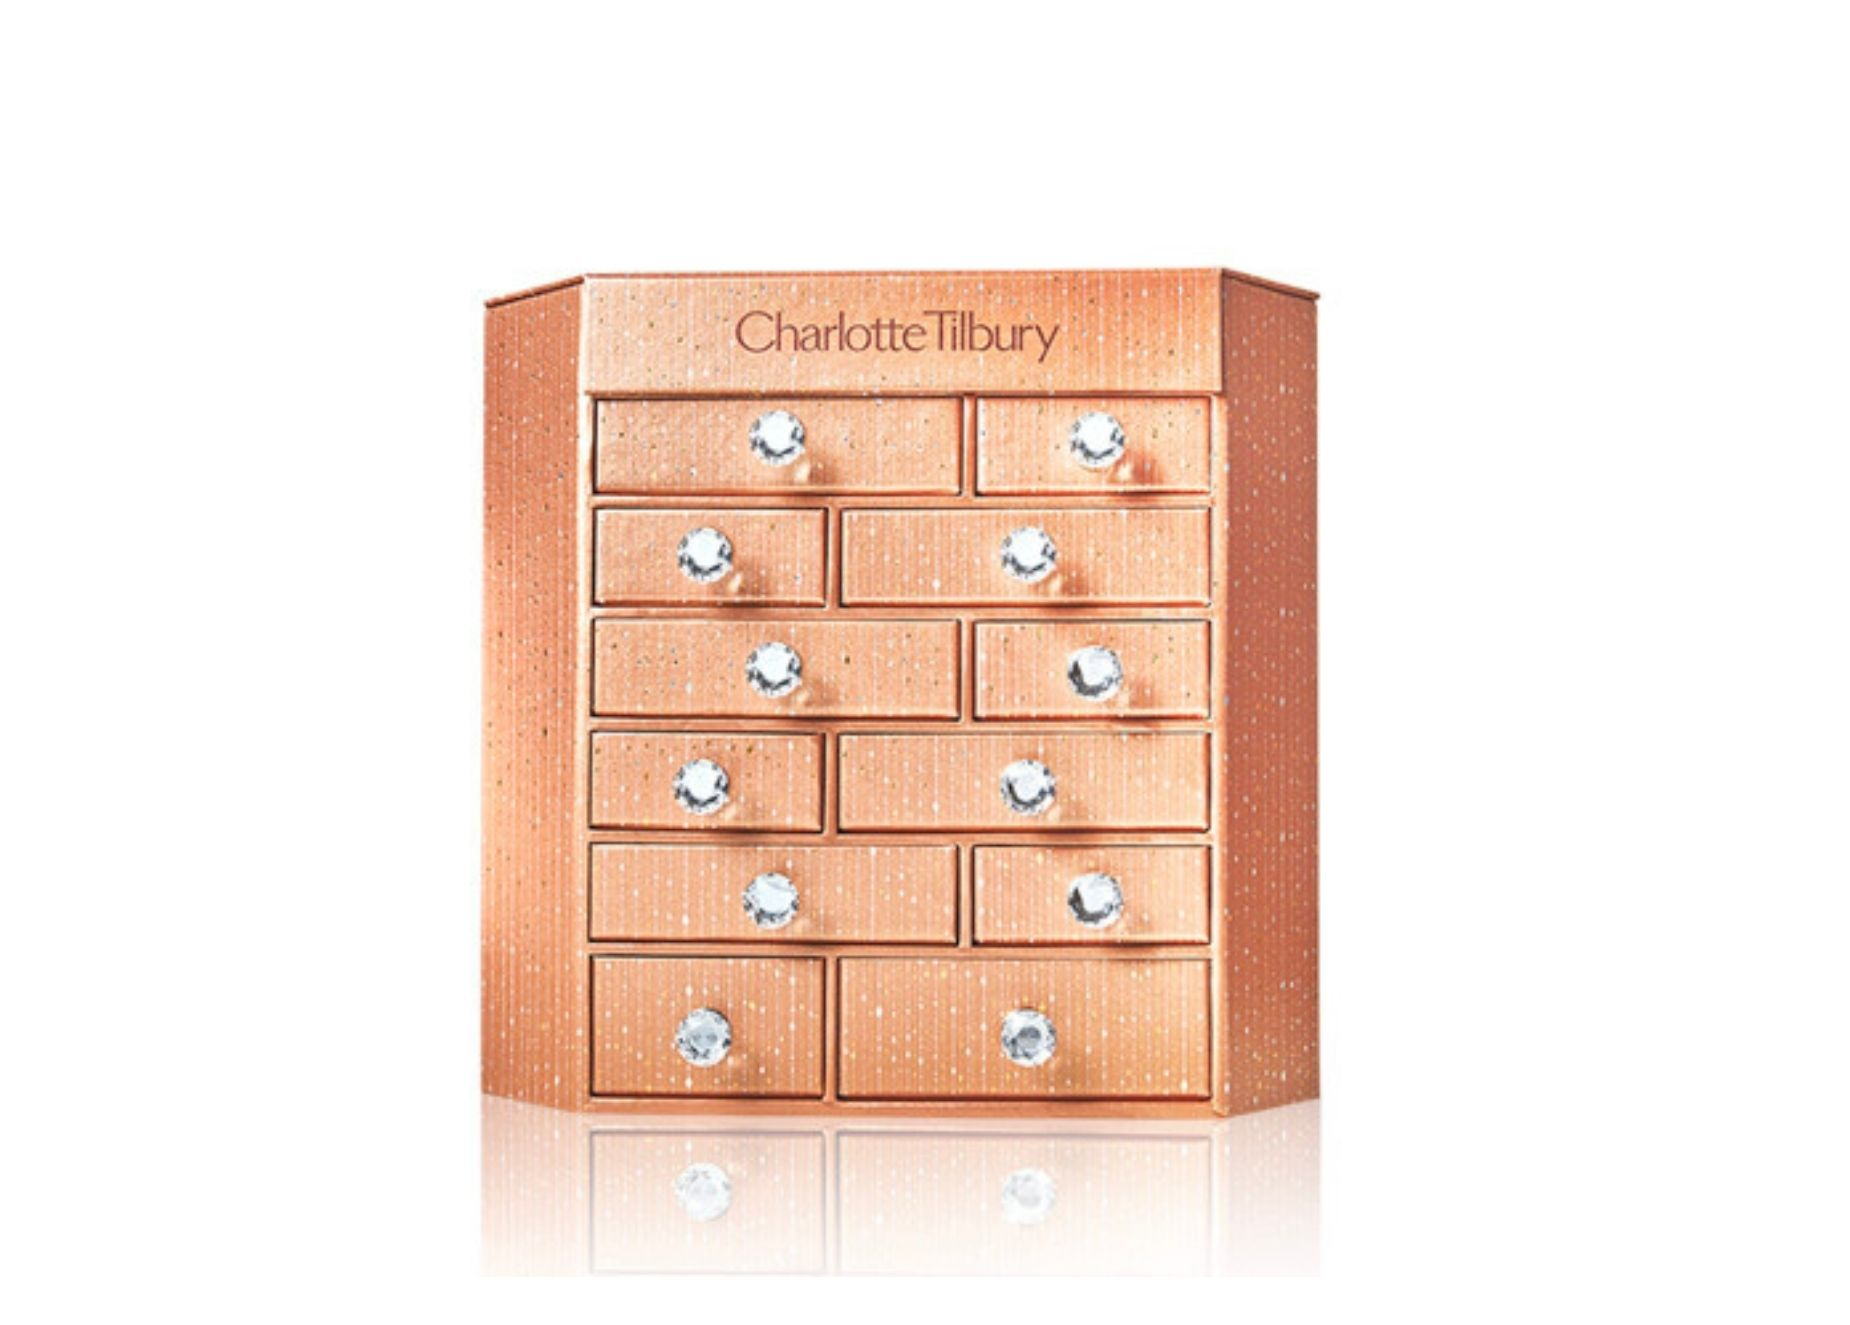 Charlotte Tilbury 2020 Advent Calendar